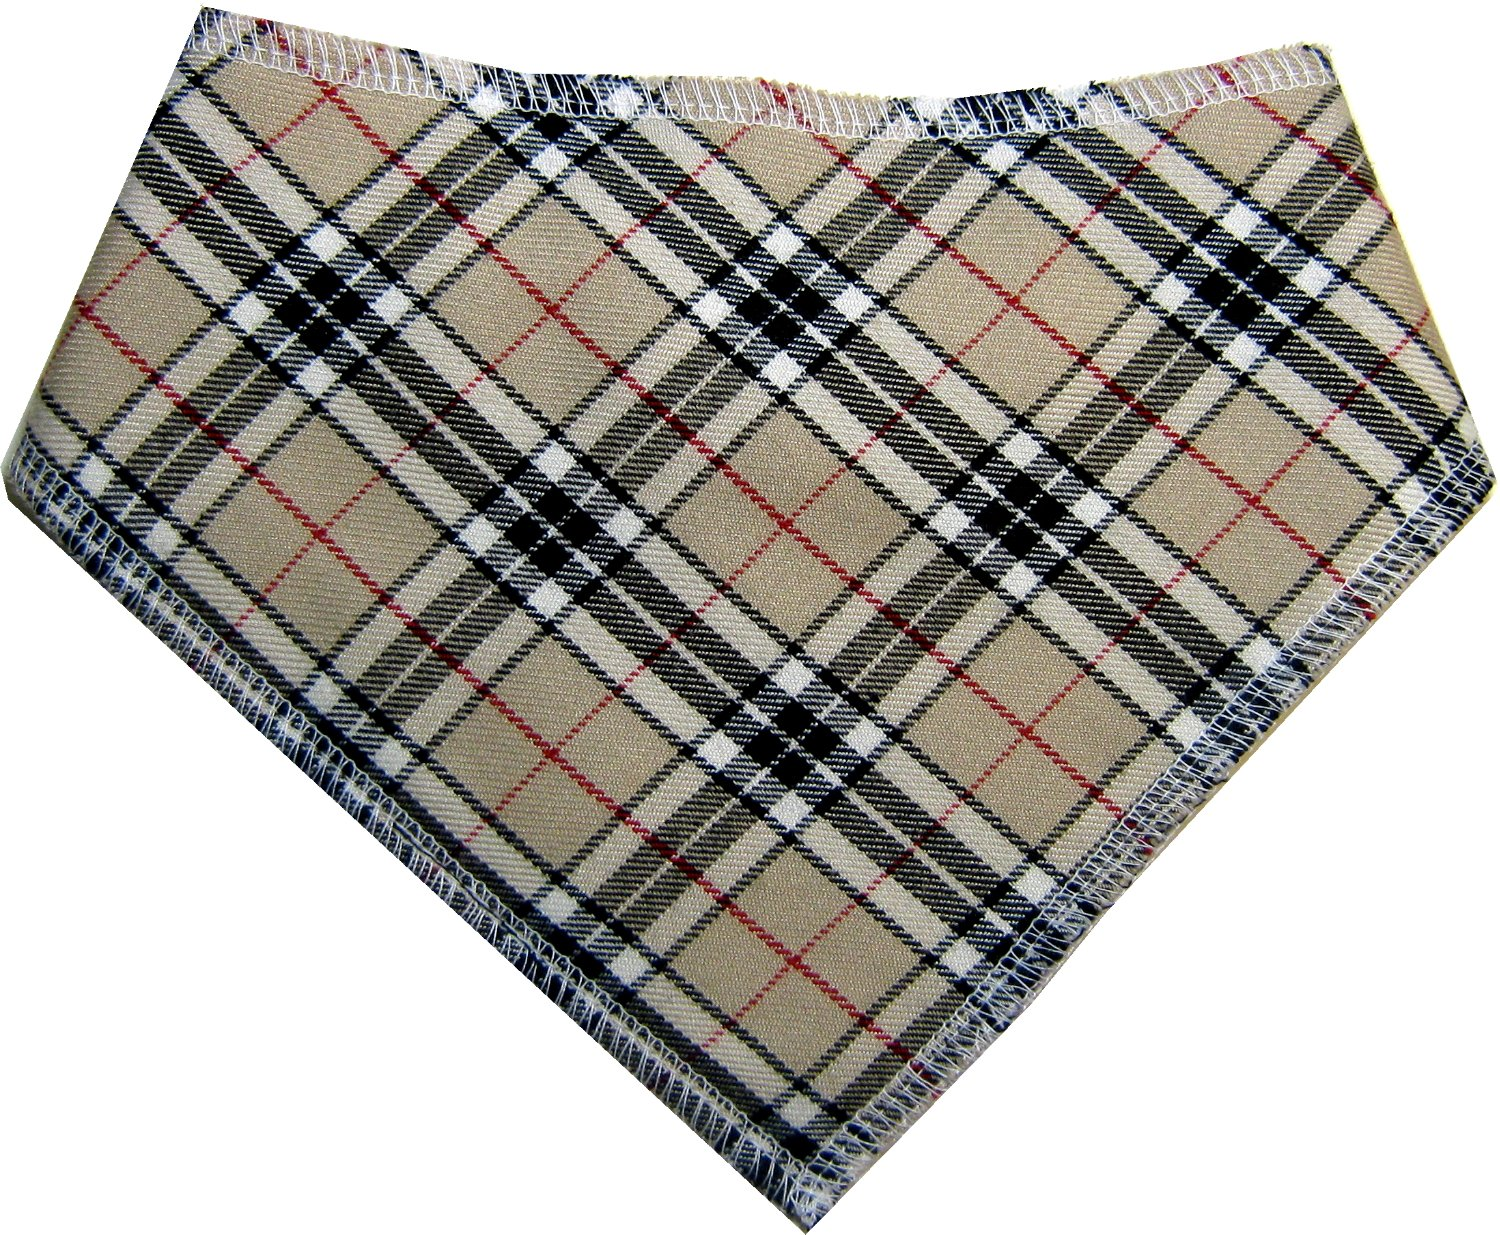 Spoilt Rotten Pets, S2 GRRRBERRY Dog Bandana. Suitable For Shih-tzu, Westies, Terriers & Cockerpoo Sized Dogs